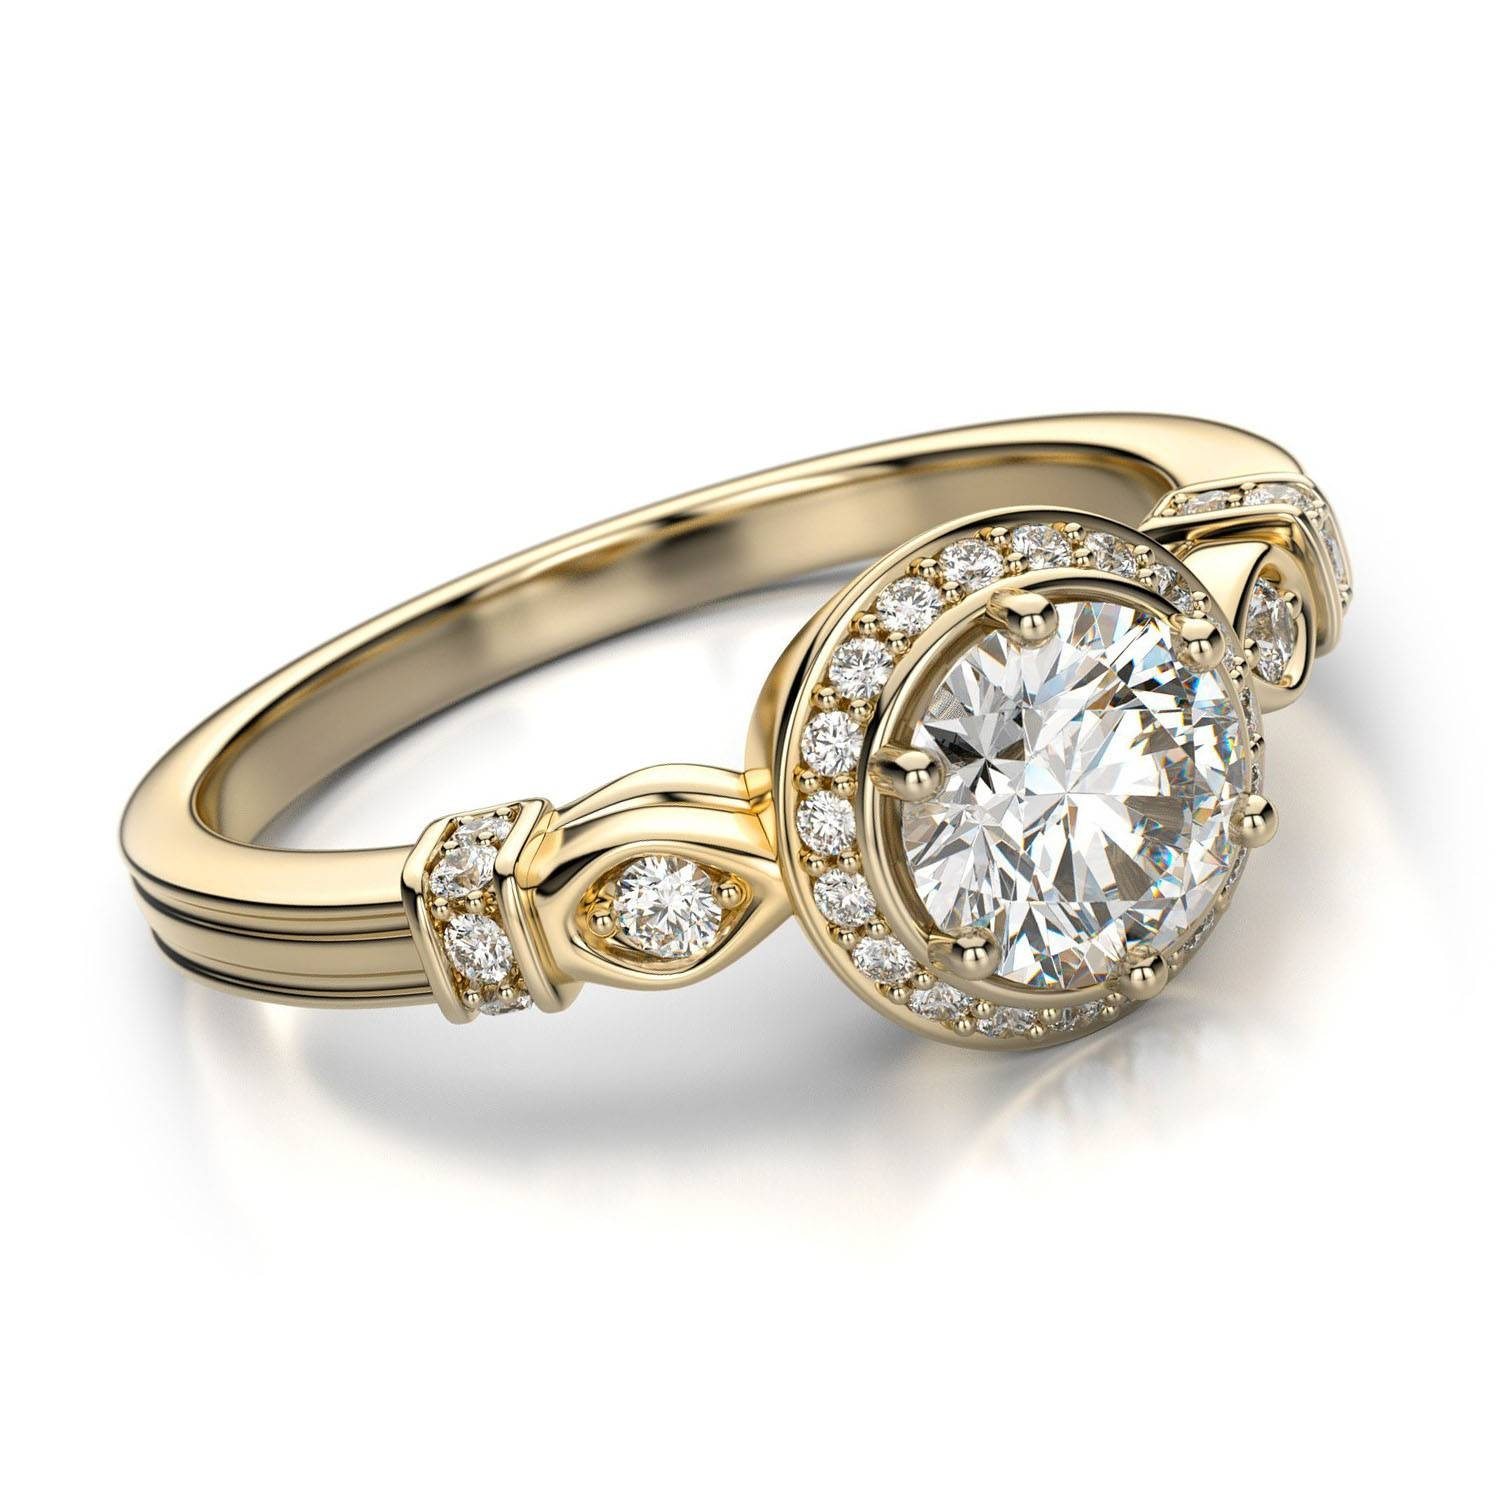 gold ring white moissanites lab jewellery pin bands eternity women romantic diamond wedding grown engagement for gala